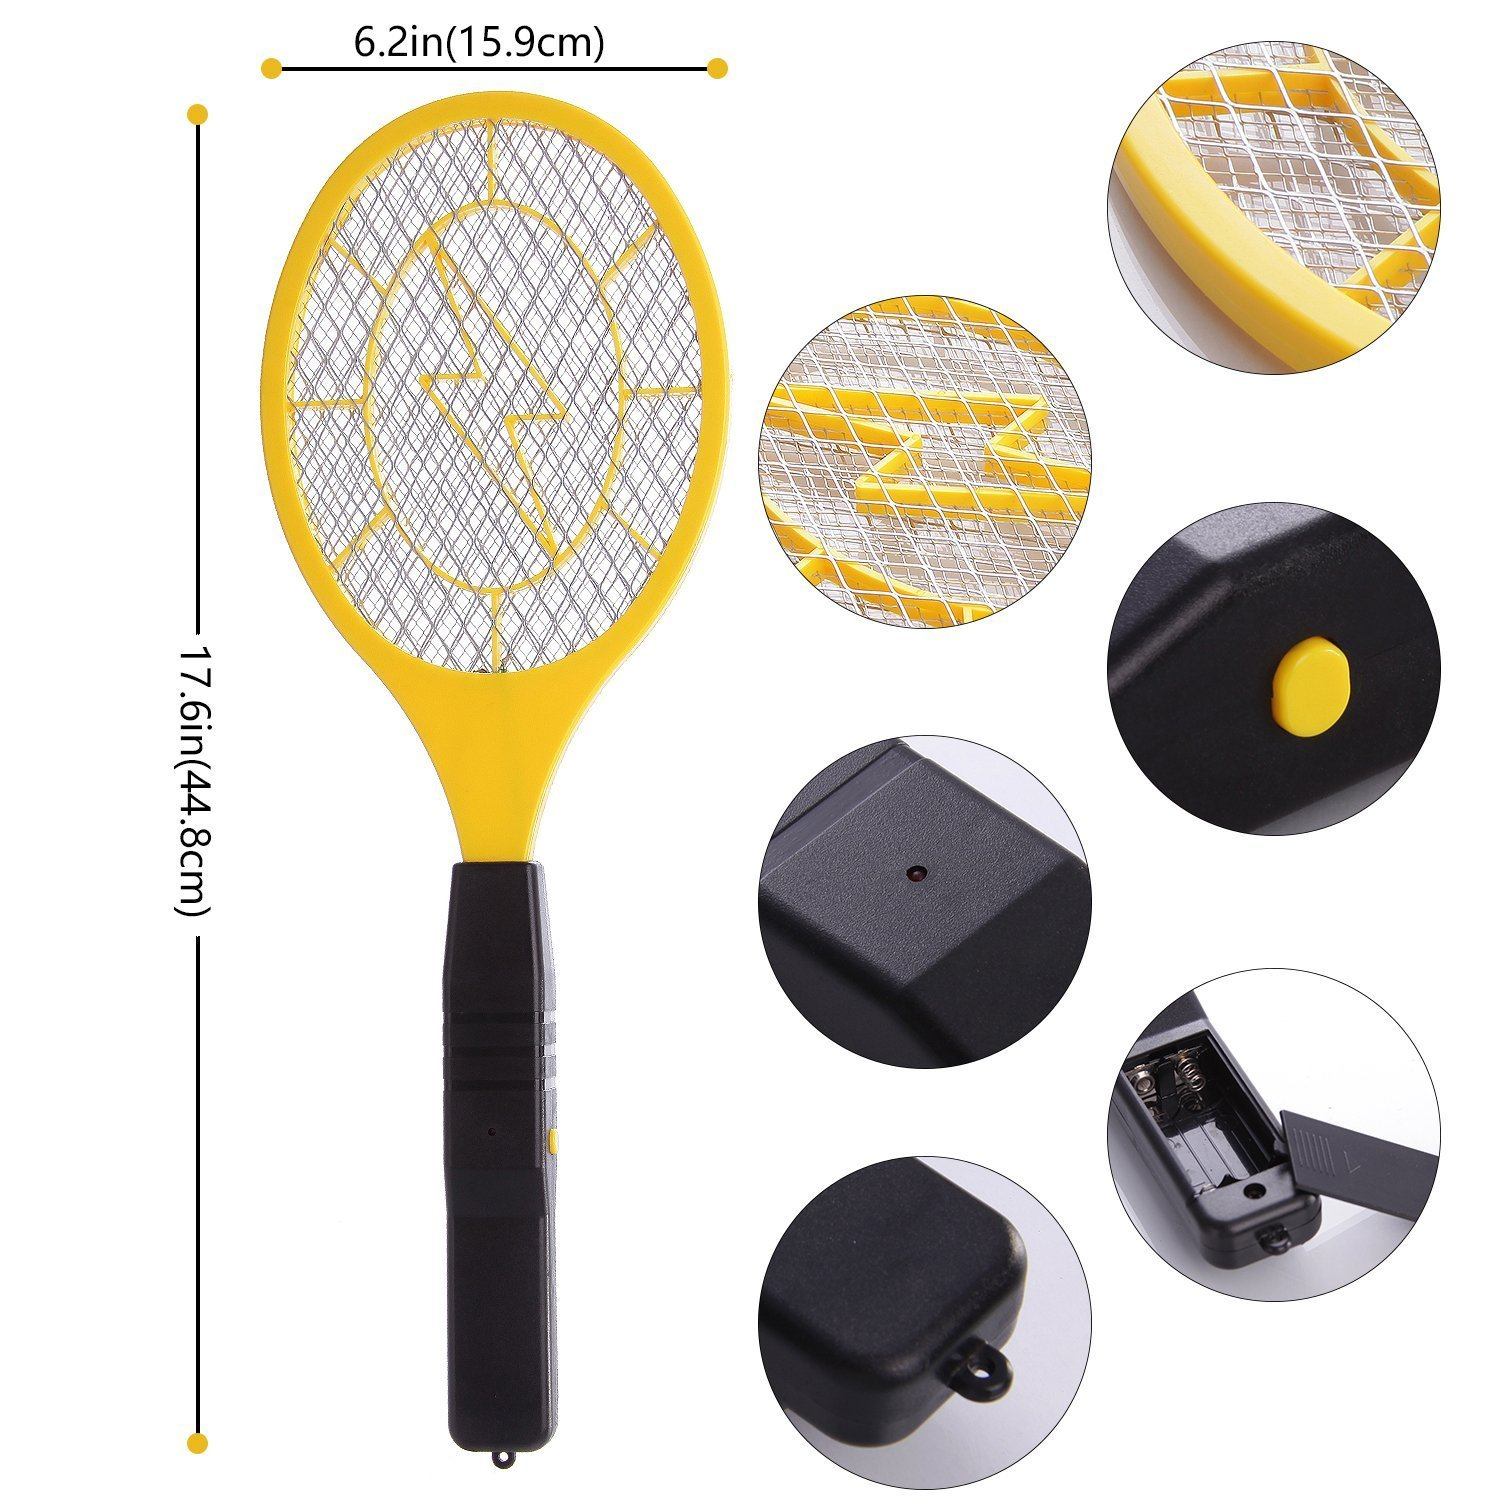 Bug zapper- Electric Fly Swatter ,handheld Insect Fly Killer, Mosquito Zapper against Flies,Bugs,Bees and Other Pest,Unique 3-Layer Safety Mesh Safe to Touch for Indoor and Outdoor Pest Control by Henscoqi (Image #3)